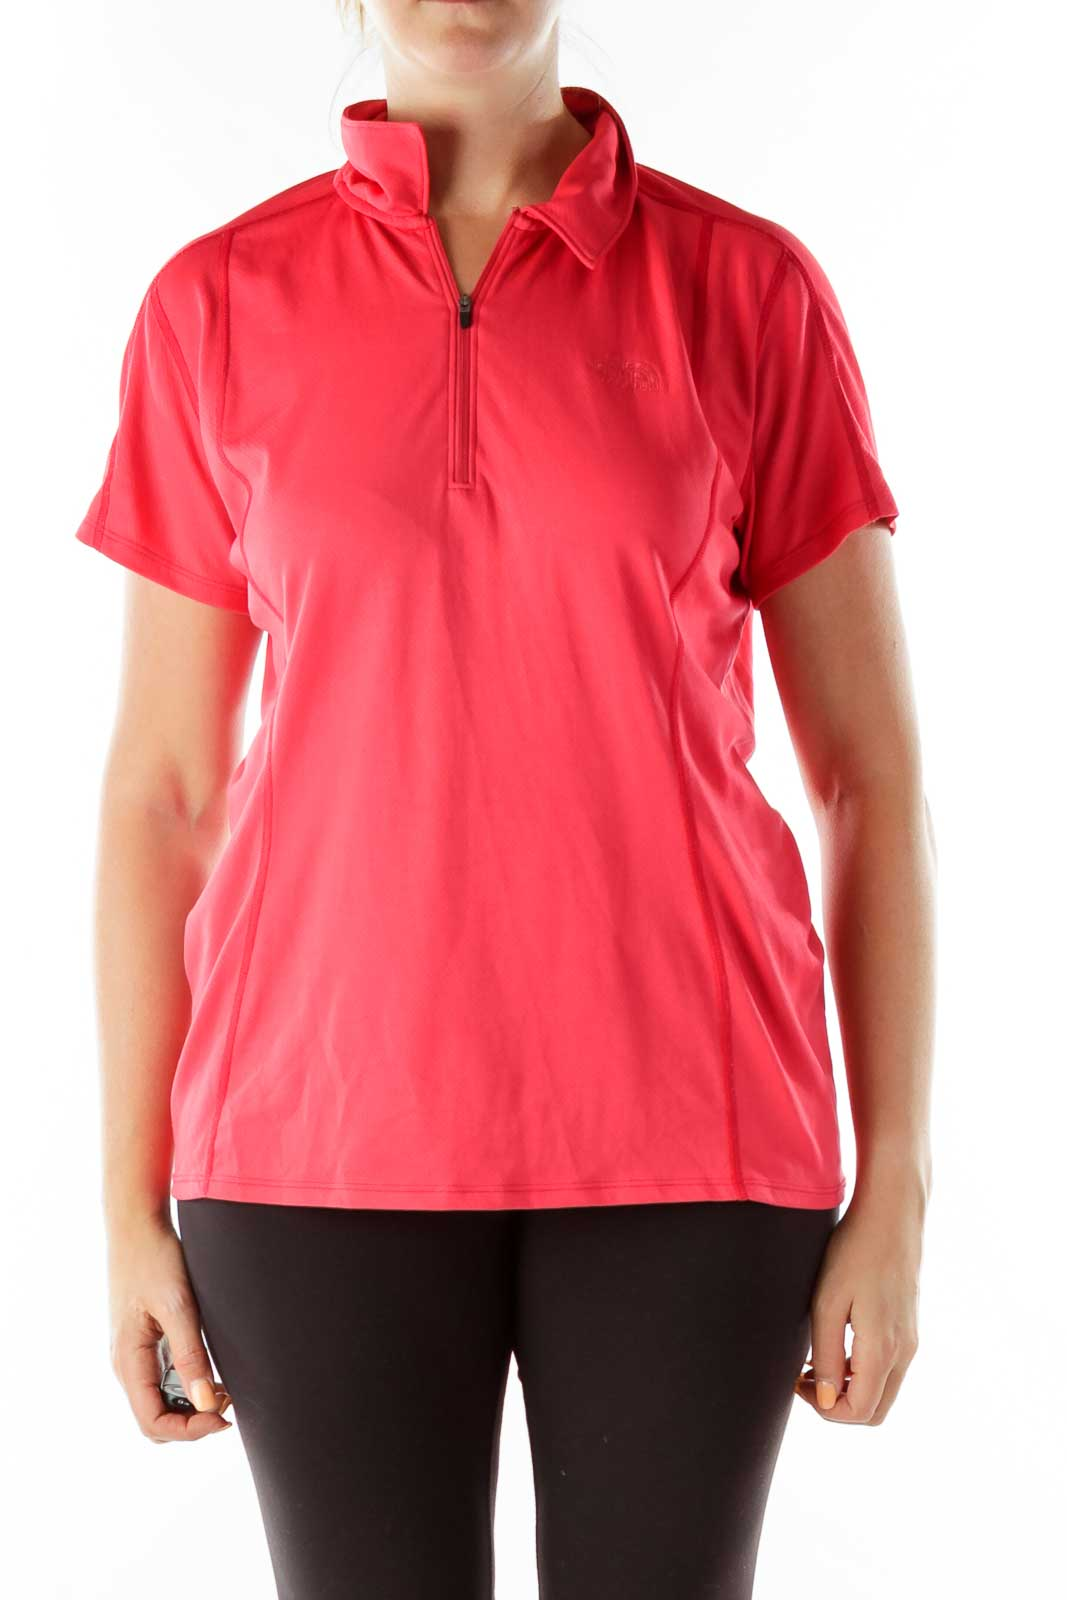 Red Sports T-Shirt Front